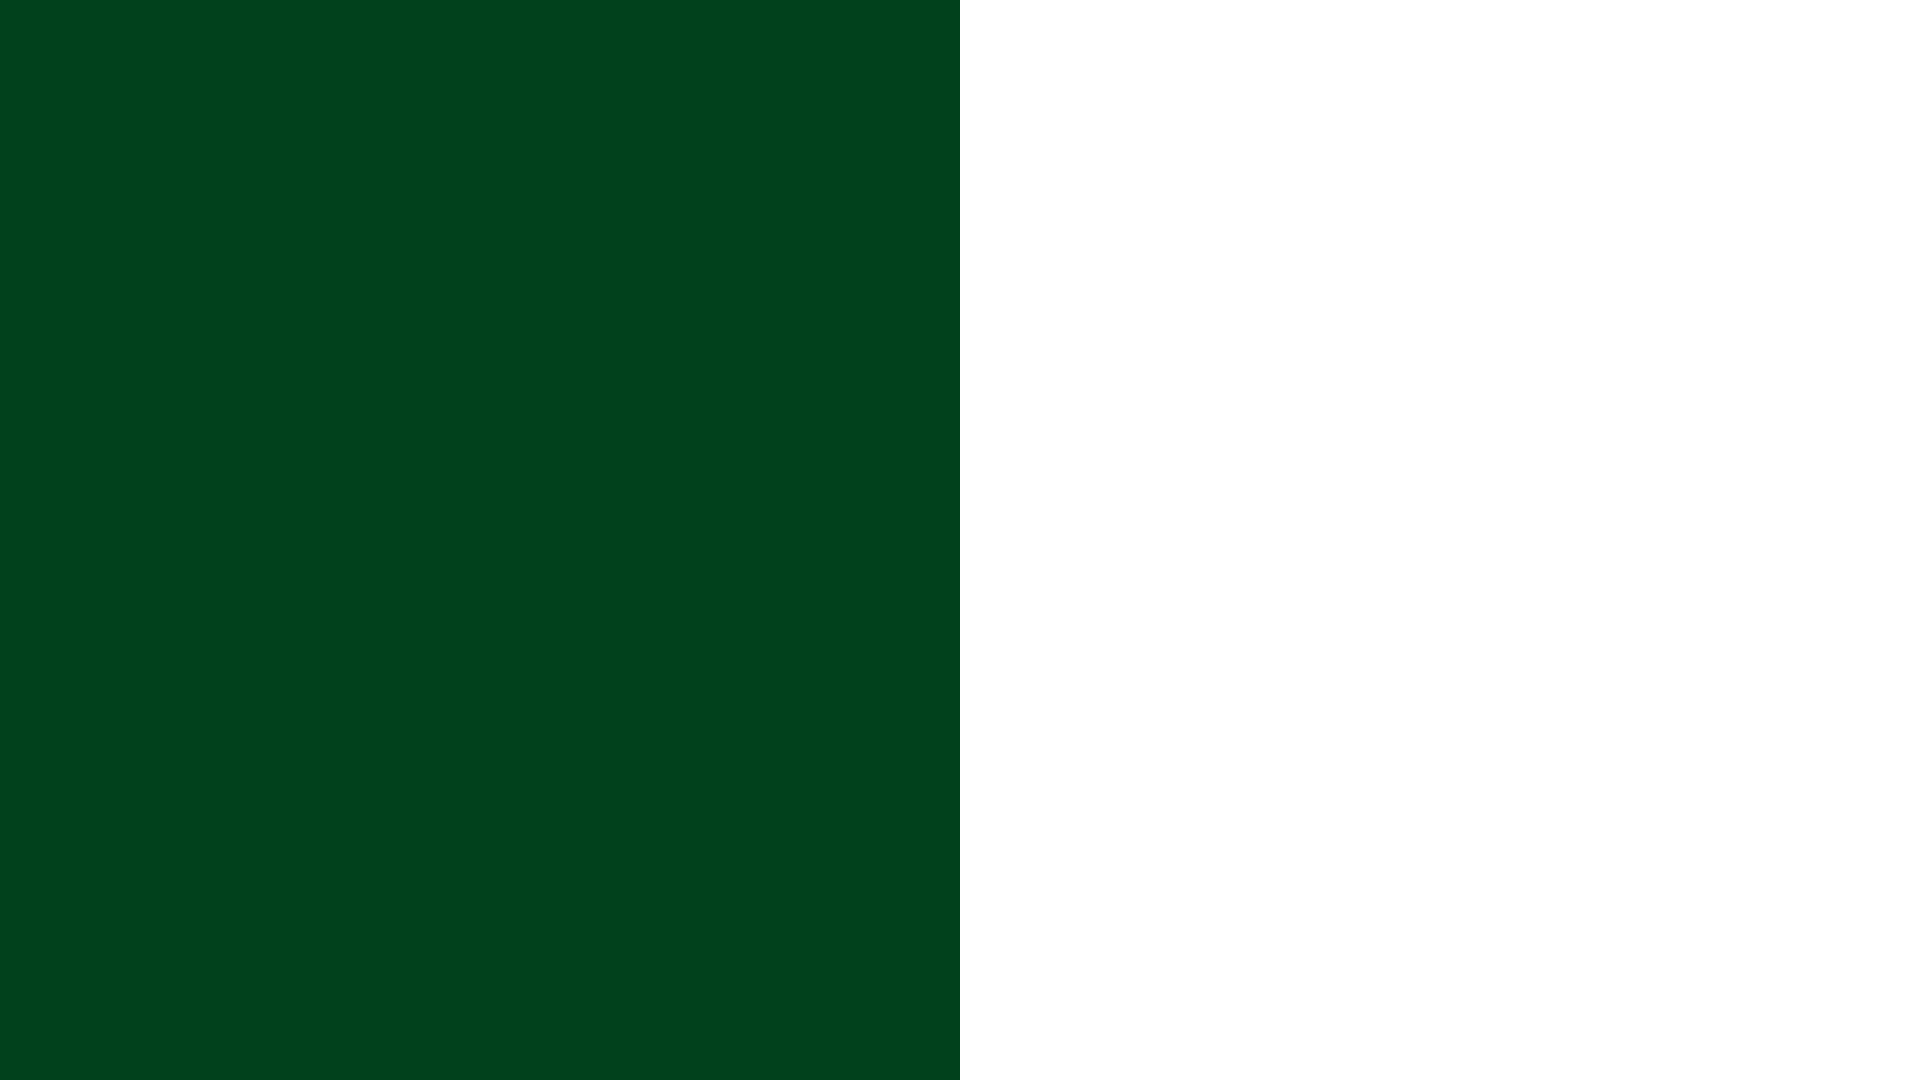 Pakistan Flag Color Palette